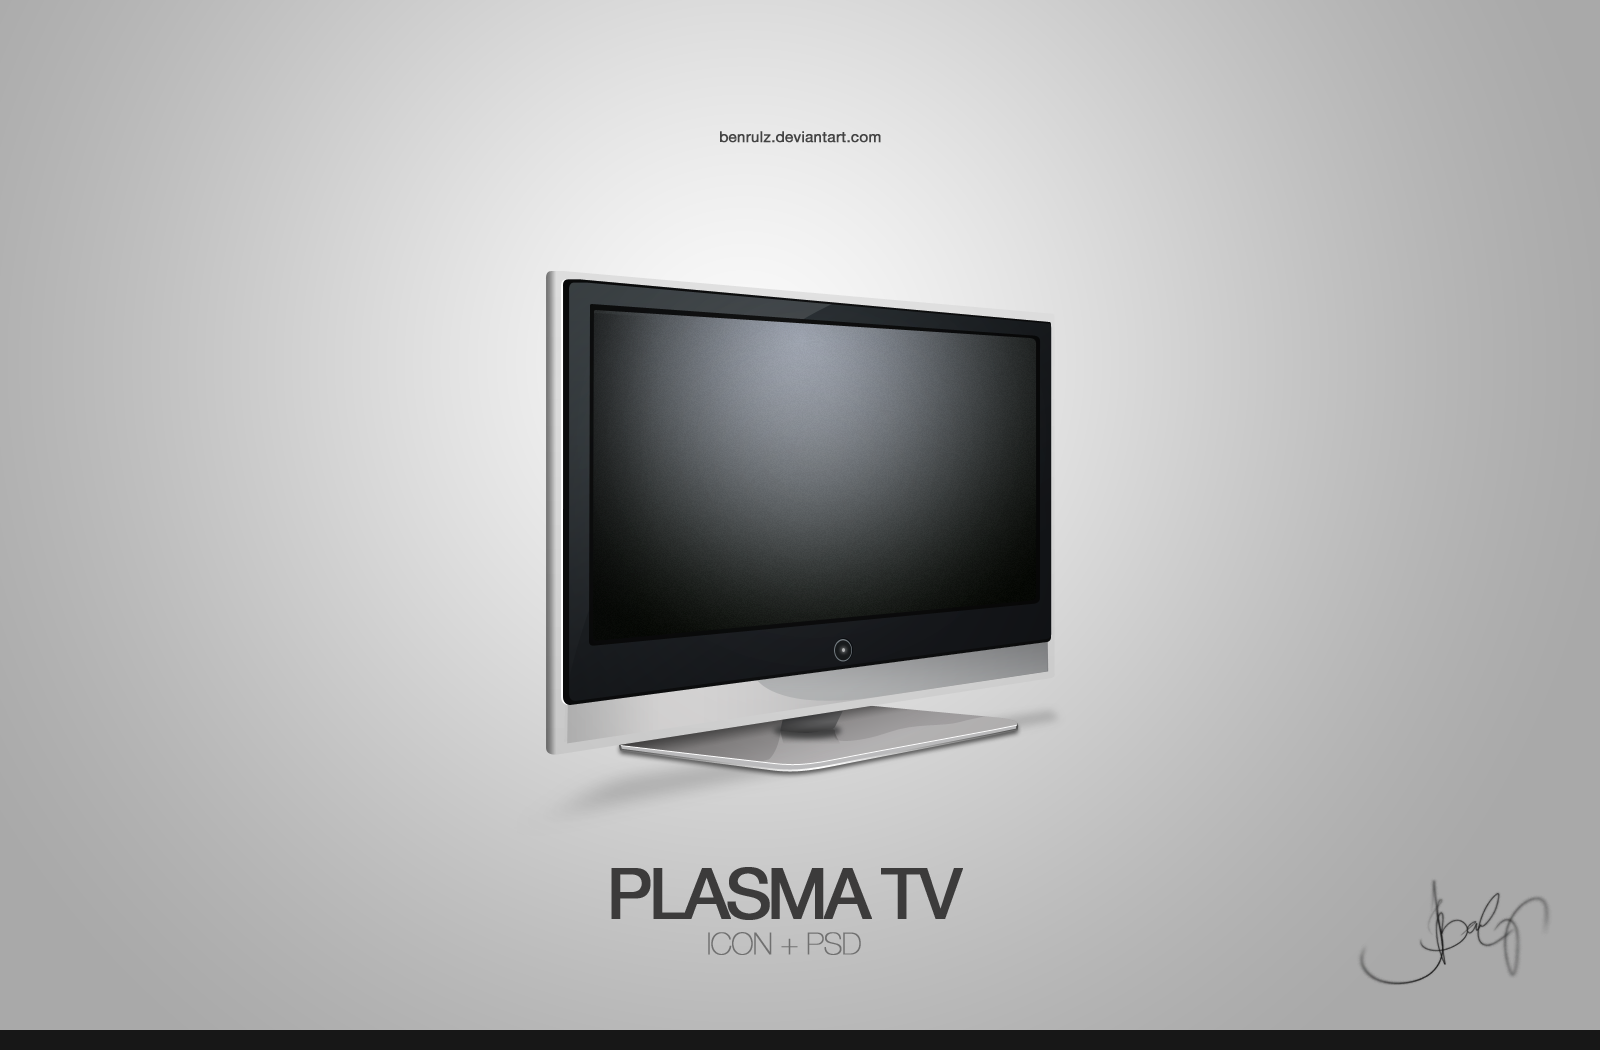 icon plasma tv by benrulz on deviantart. Black Bedroom Furniture Sets. Home Design Ideas